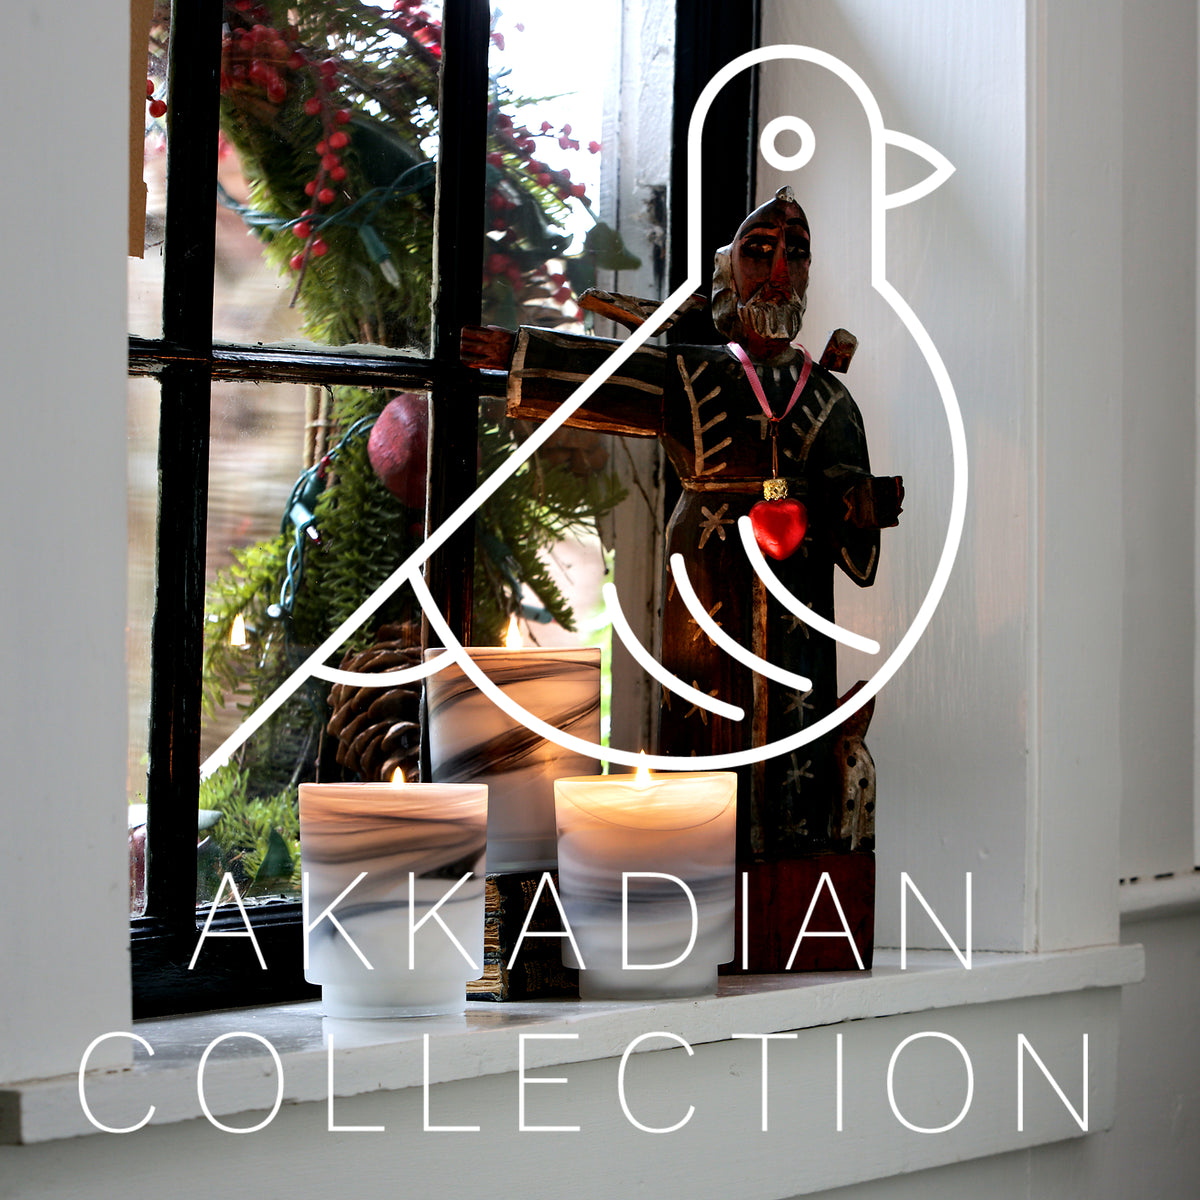 Akkadian Collection